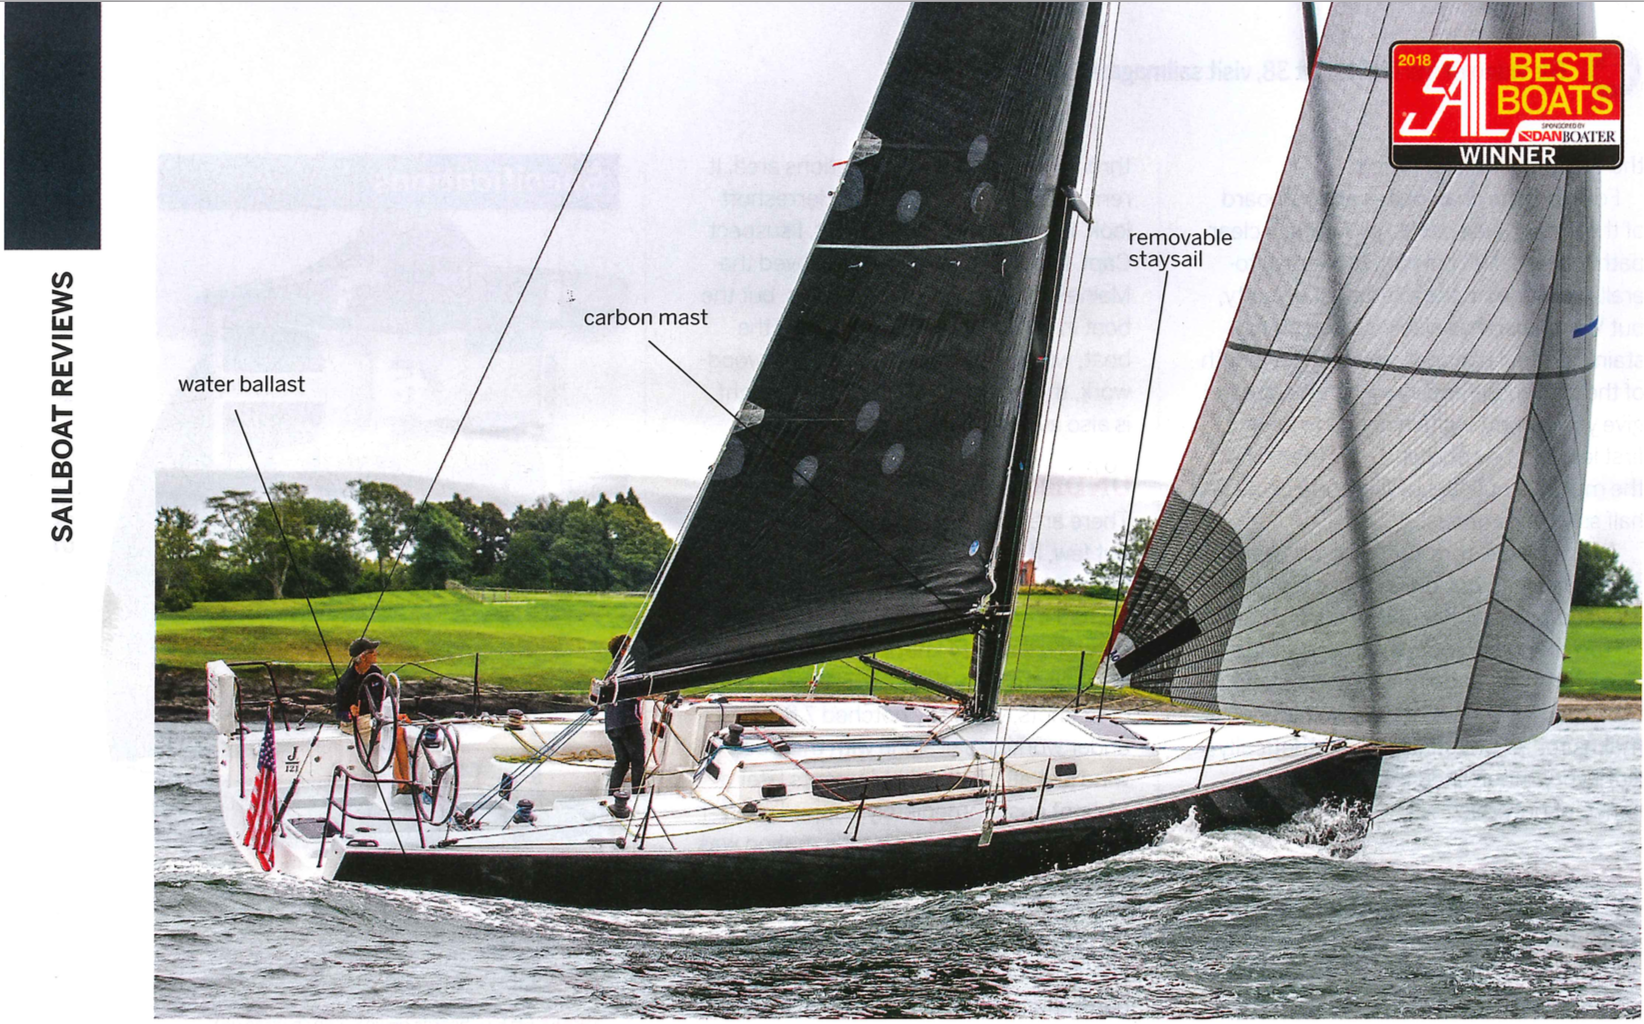 J/121 SAIL magazine guide review